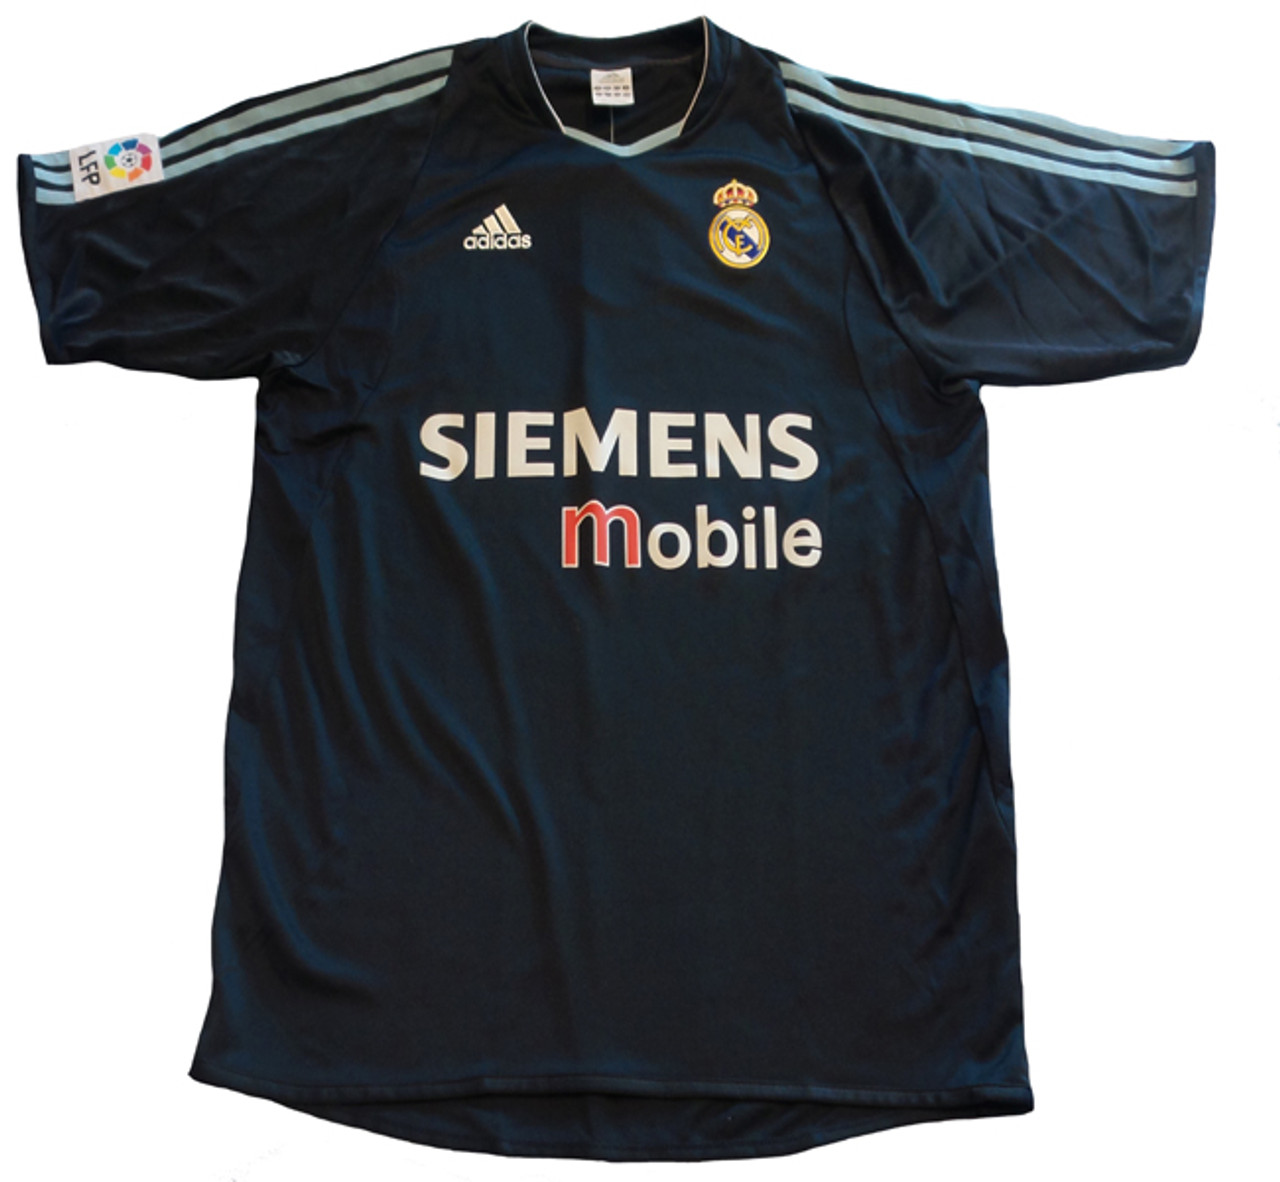 half off e2586 2dcce ADIDAS REAL MADRID 2004 AWAY NAVY BLUE